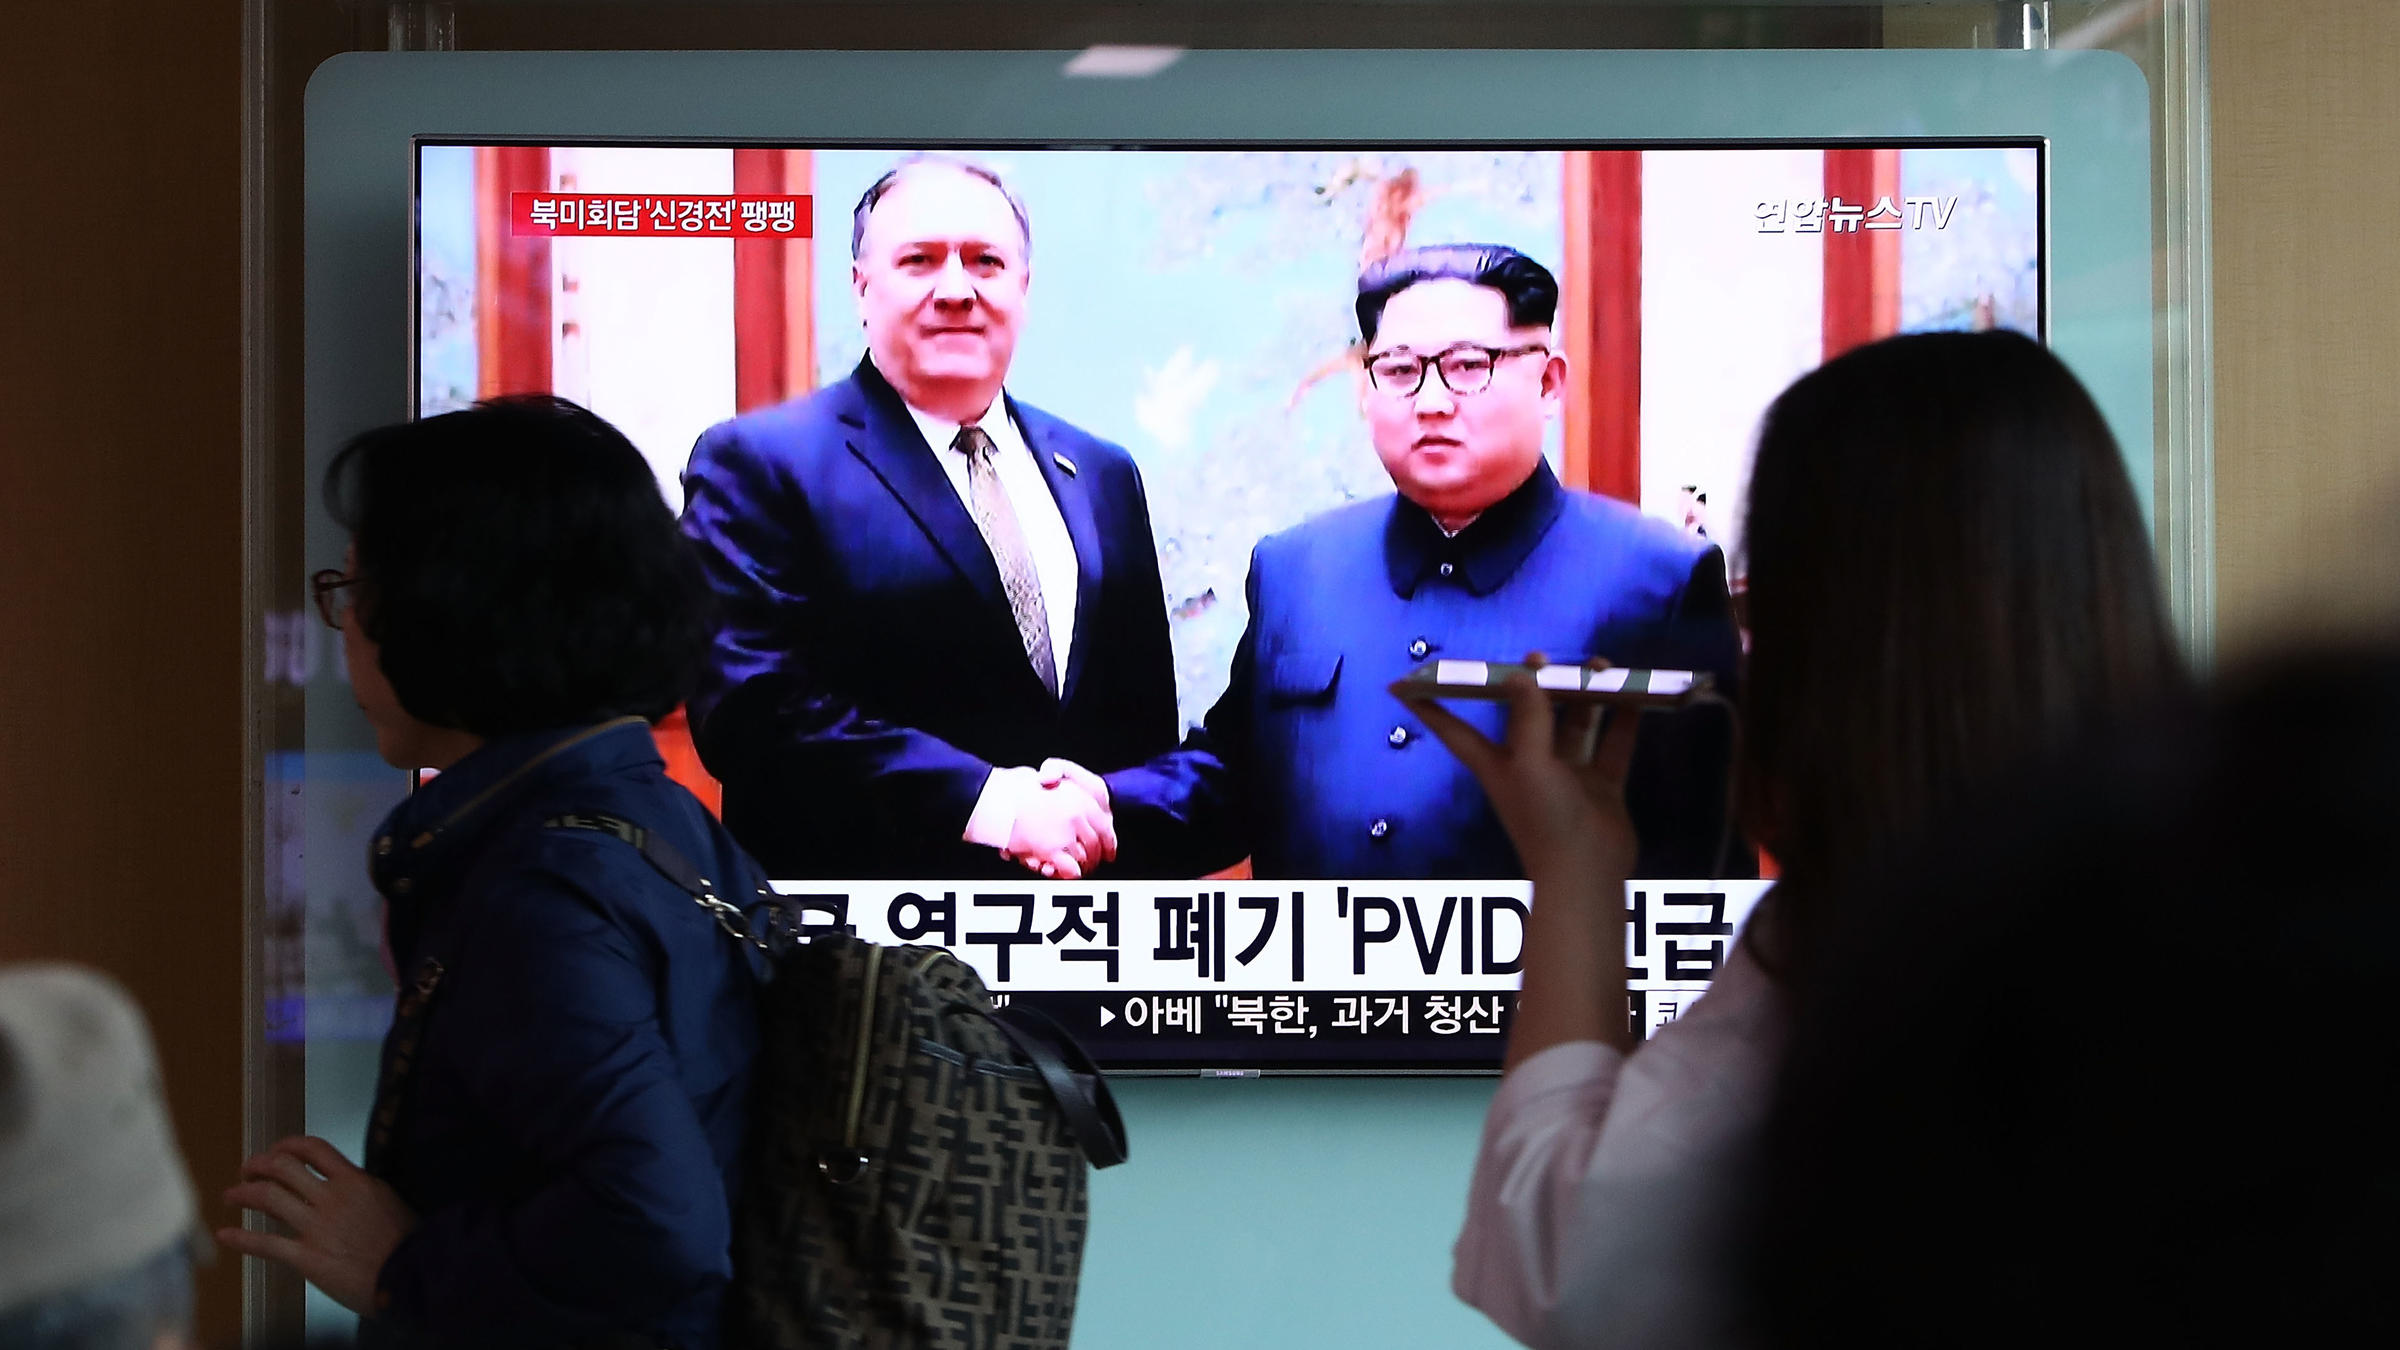 Releasing three, North Koreans signal openness ahead of summit